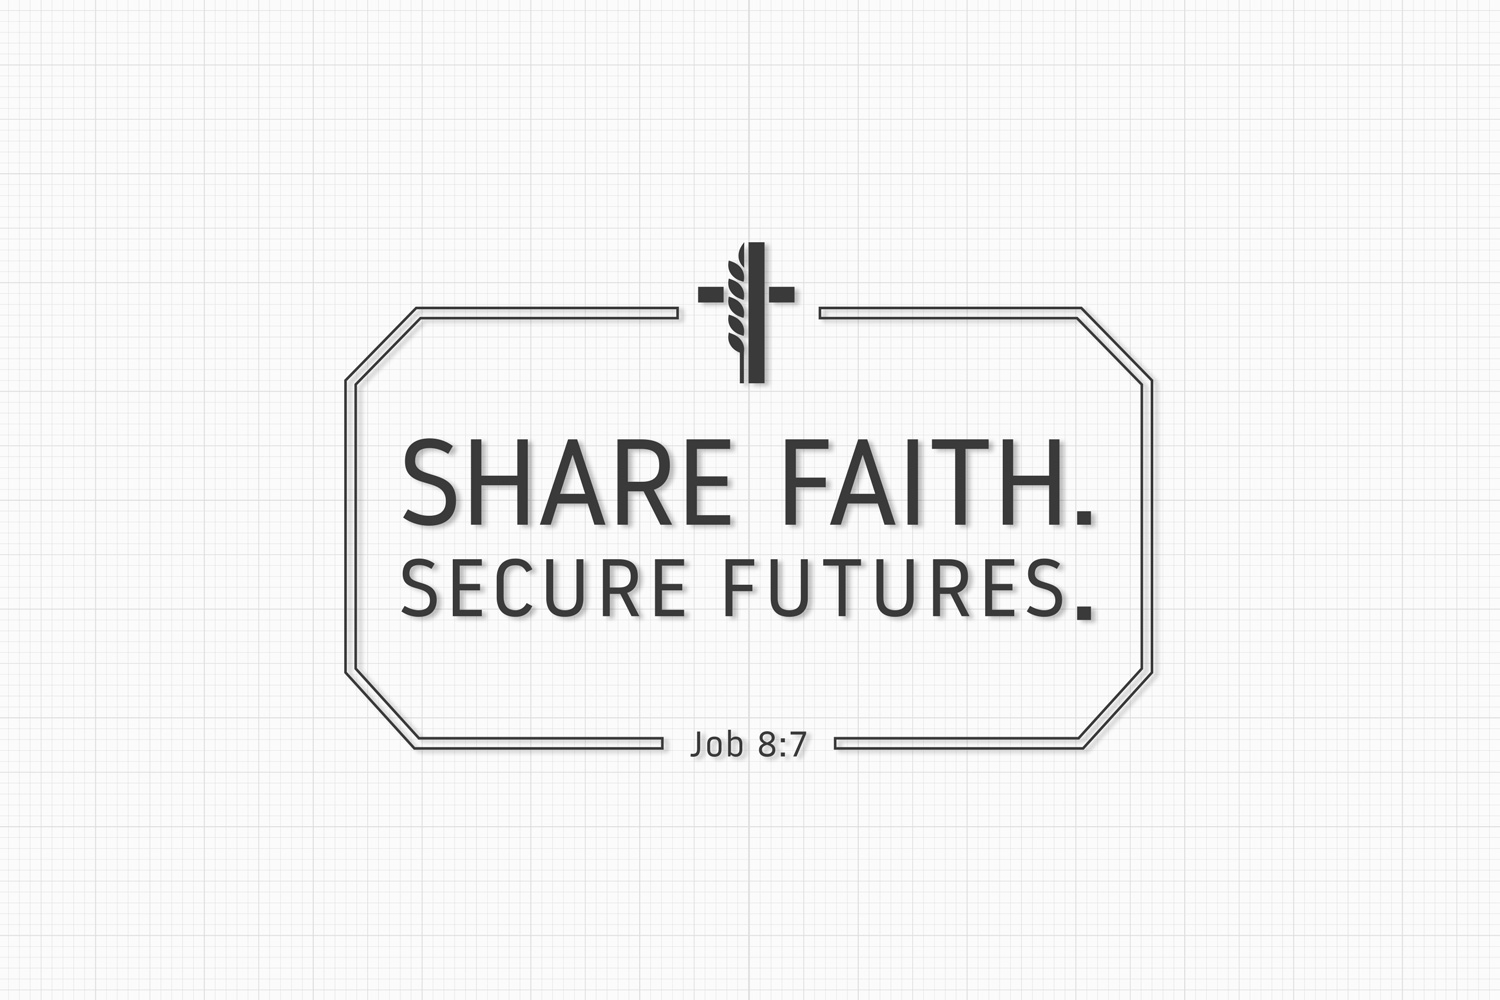 church capital stewardship themes logo example, ideas